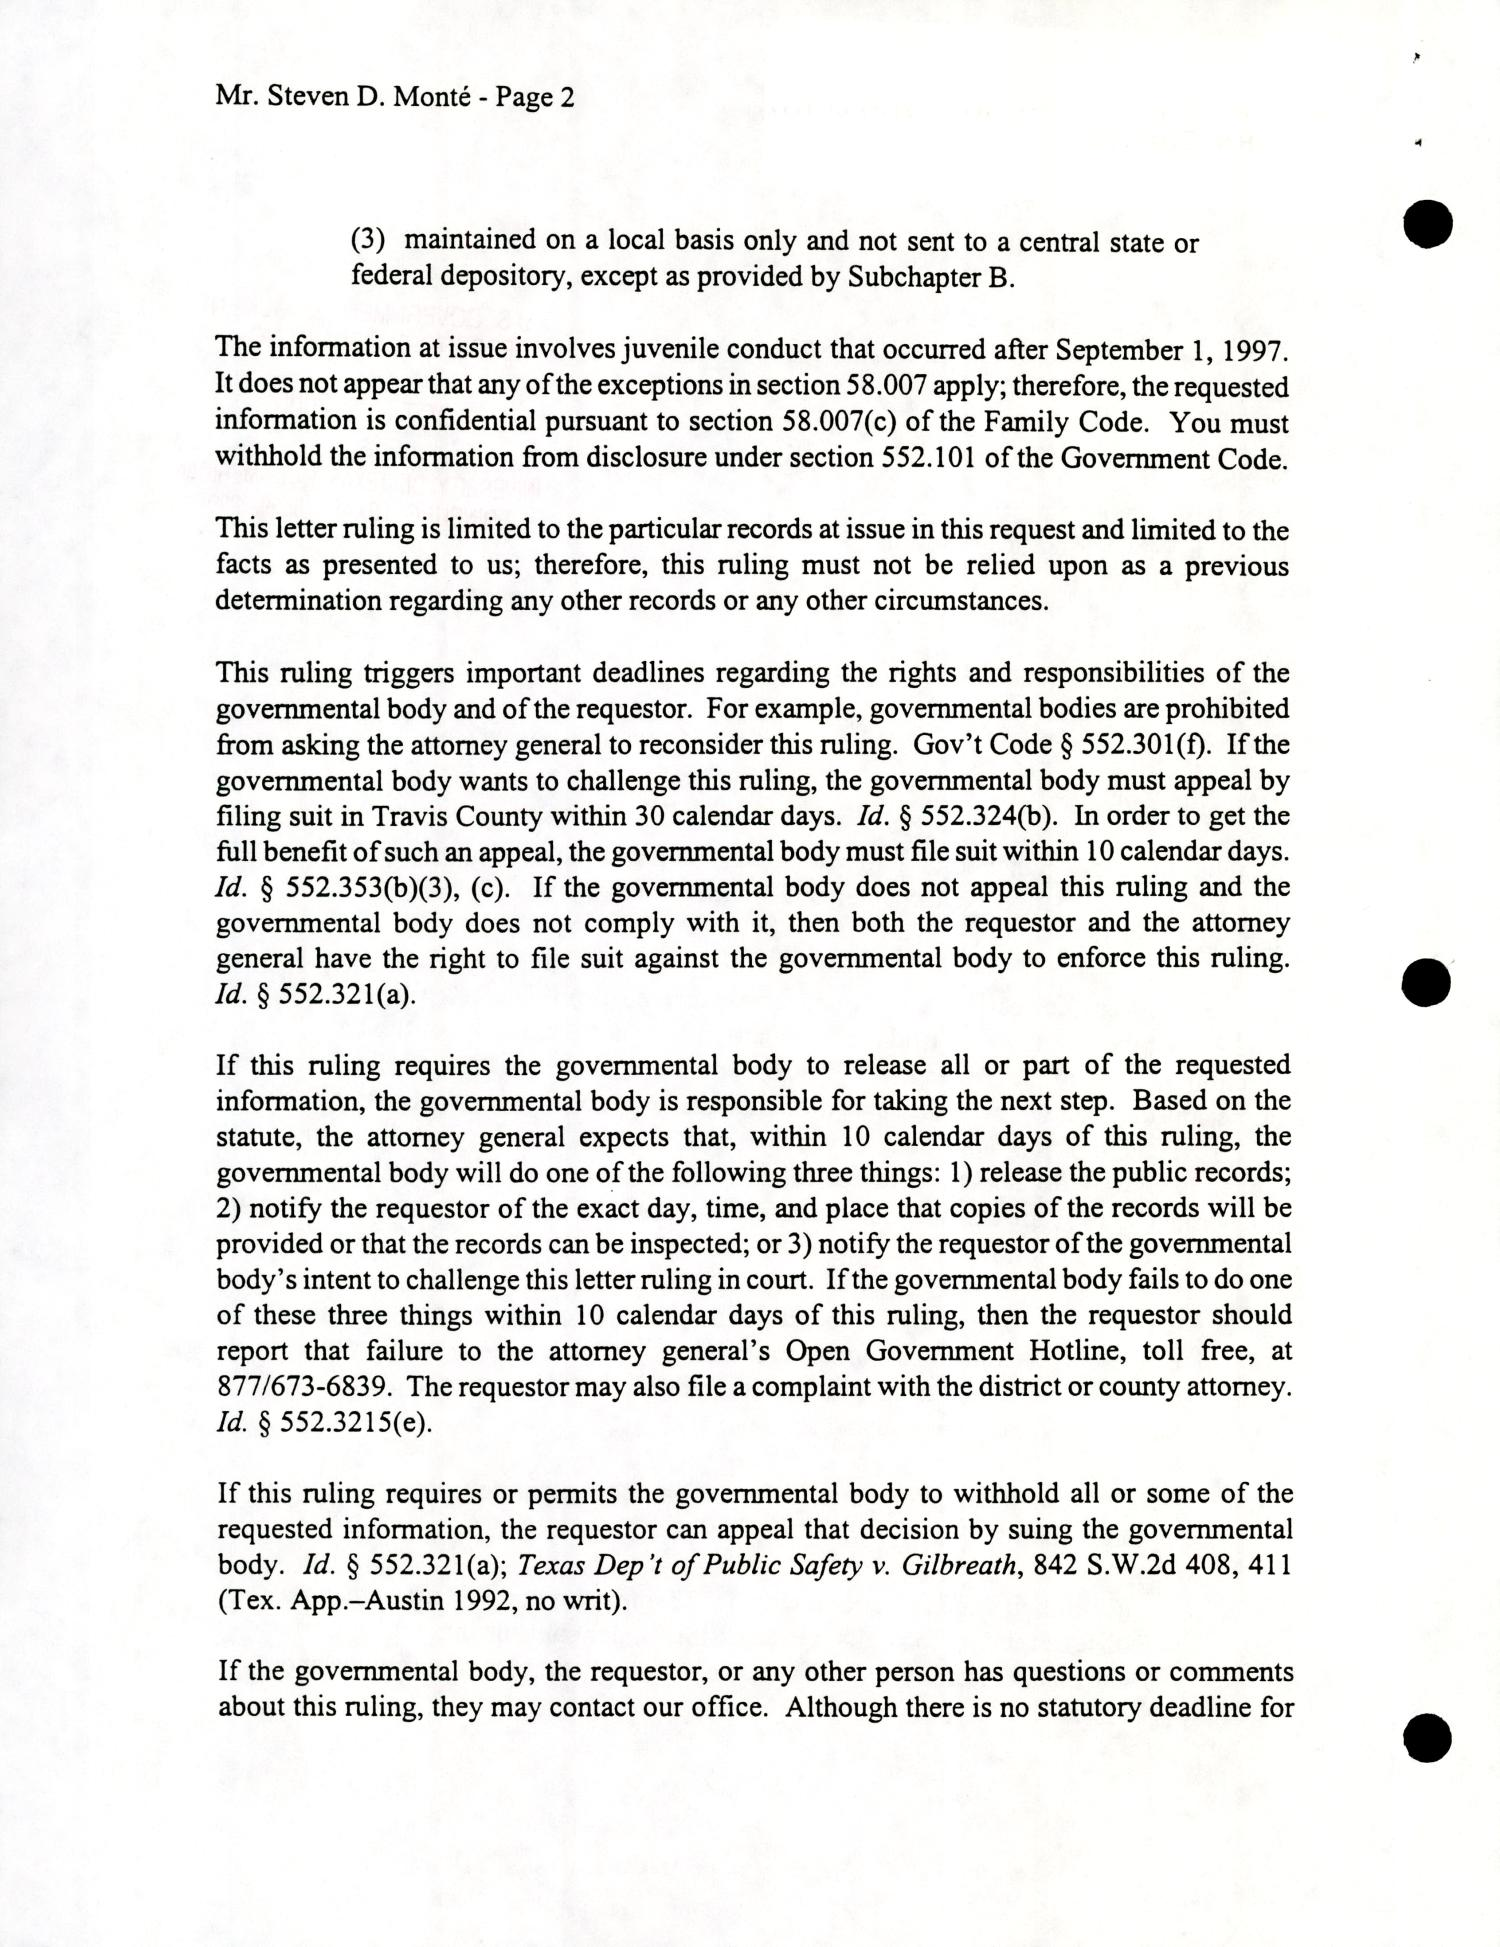 Texas Attorney General Open Records Letter Ruling: OR2000-0376                                                                                                      Page2